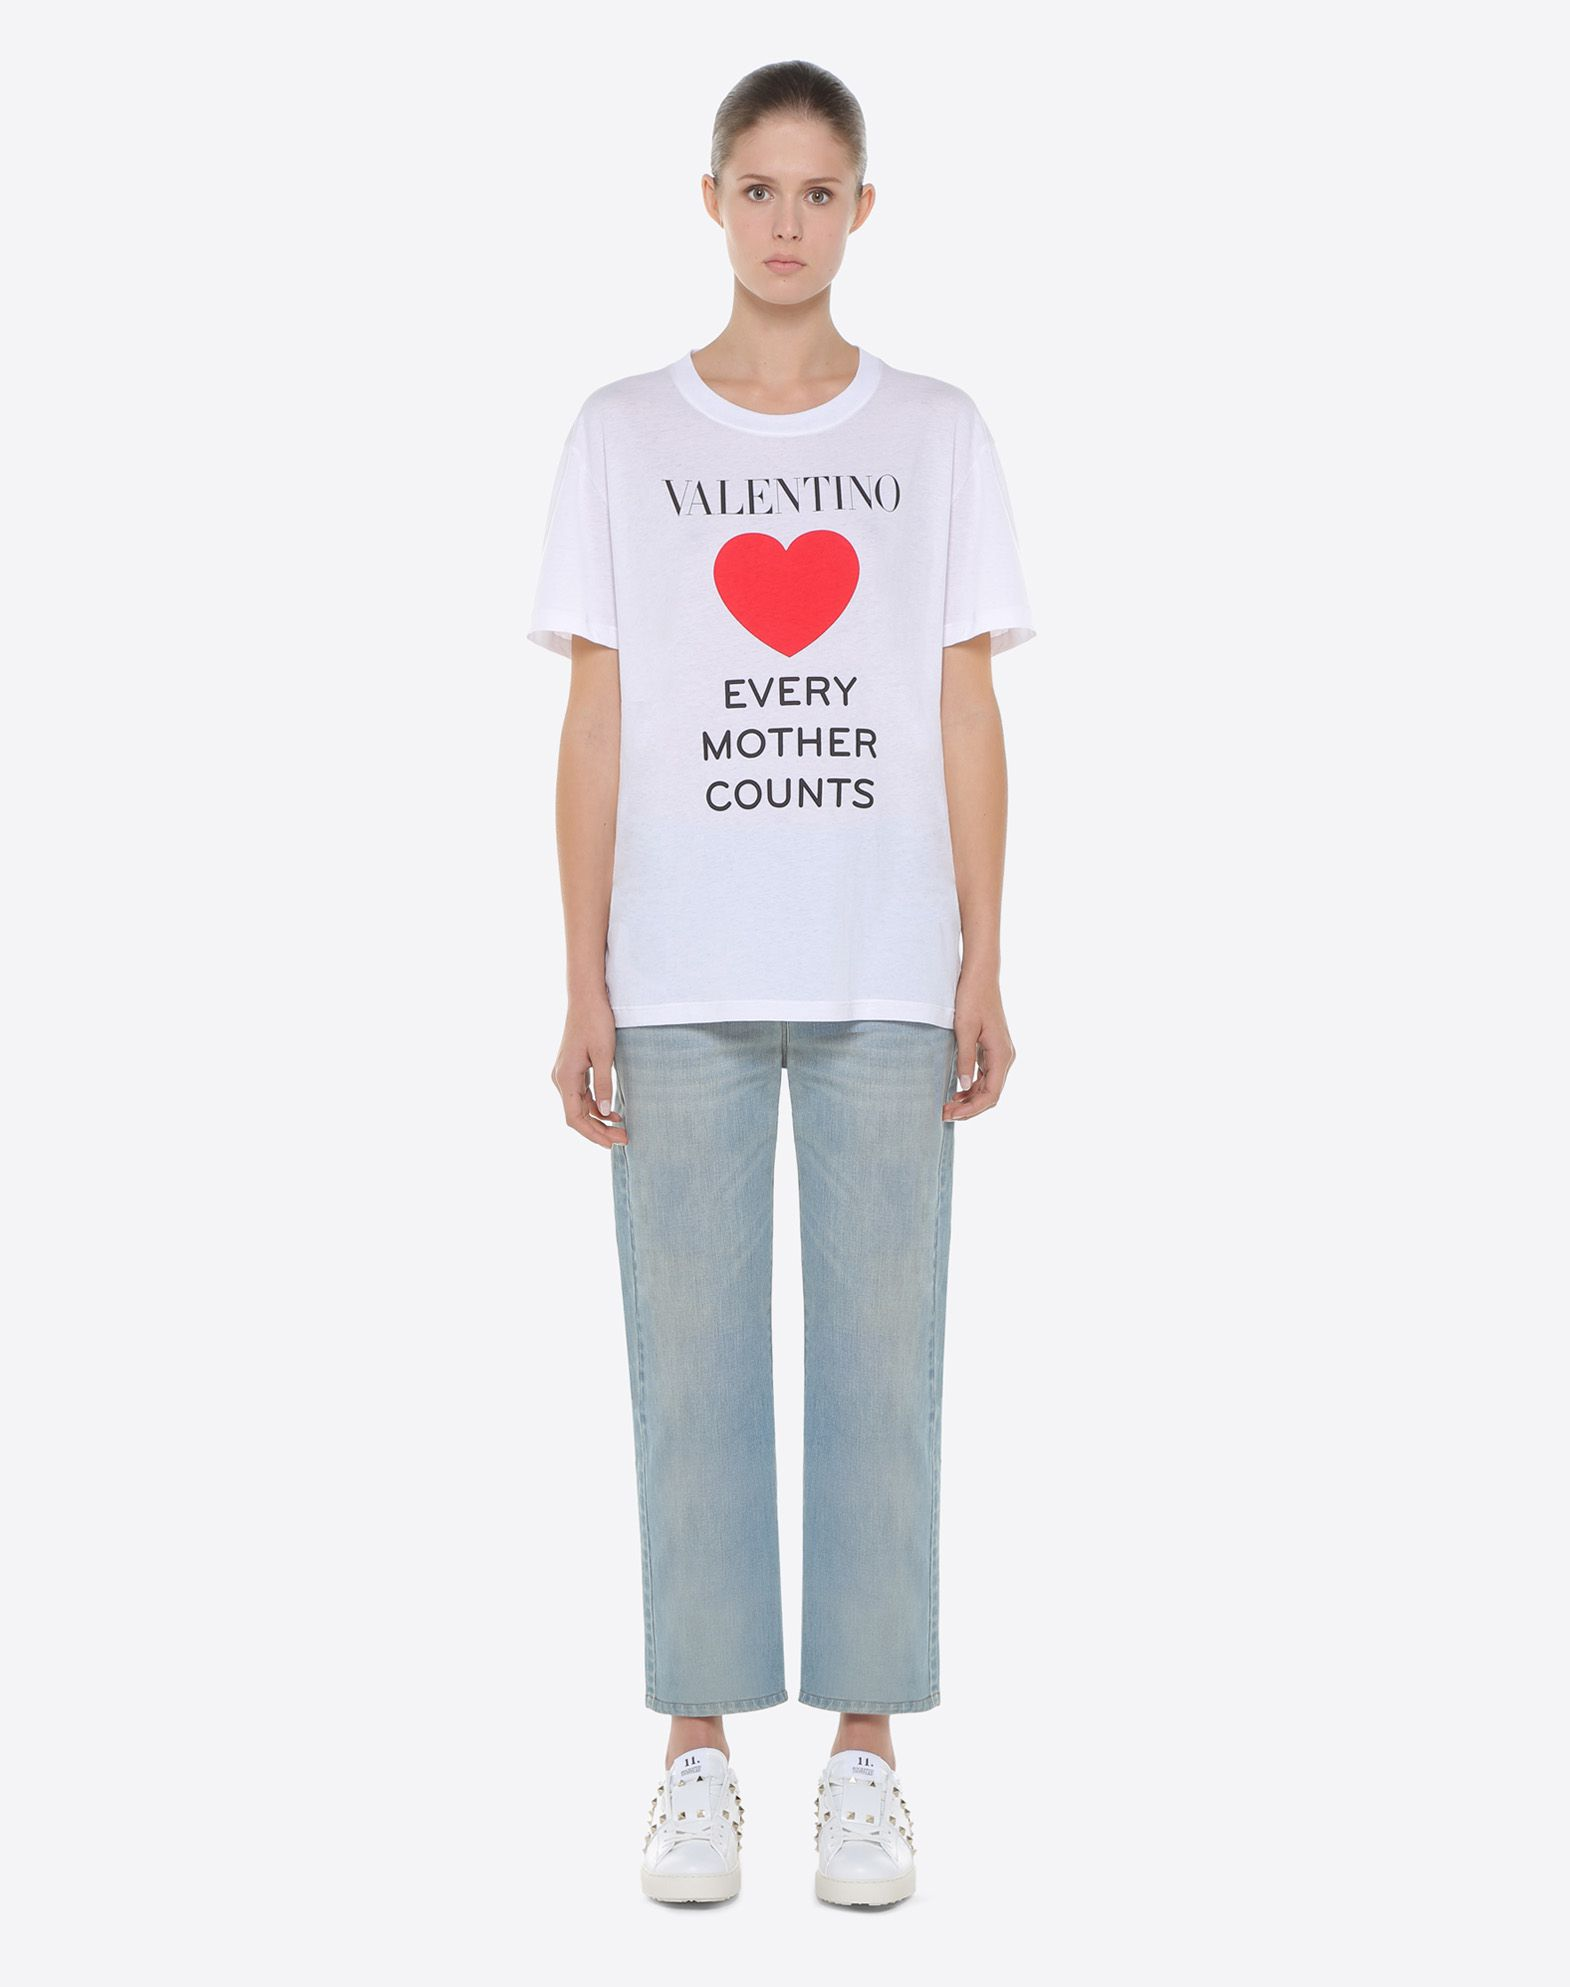 VALENTINO Every Mother Counts x Valentino T-Shirt T-shirt D r